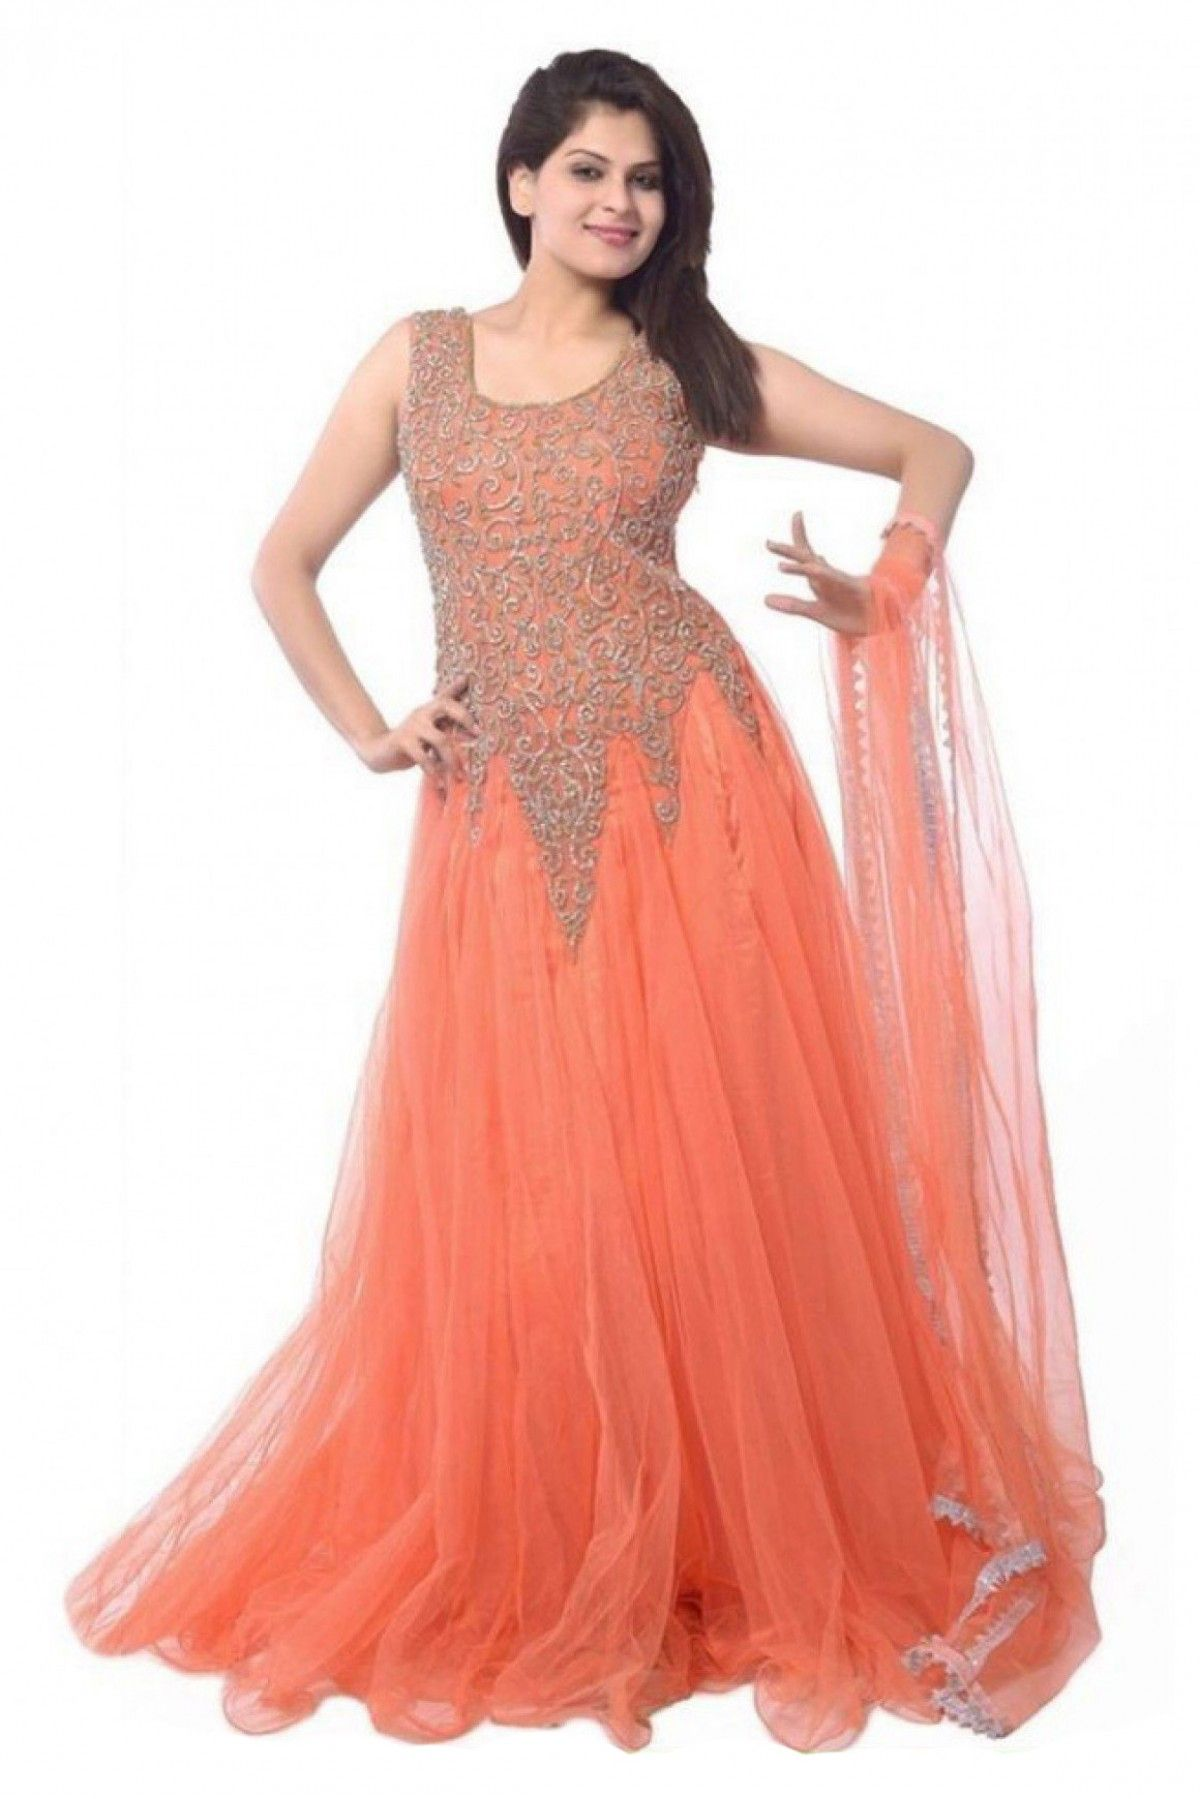 Net Party Wear Gown in Orange Colour | Gowns | Pinterest | Party ...